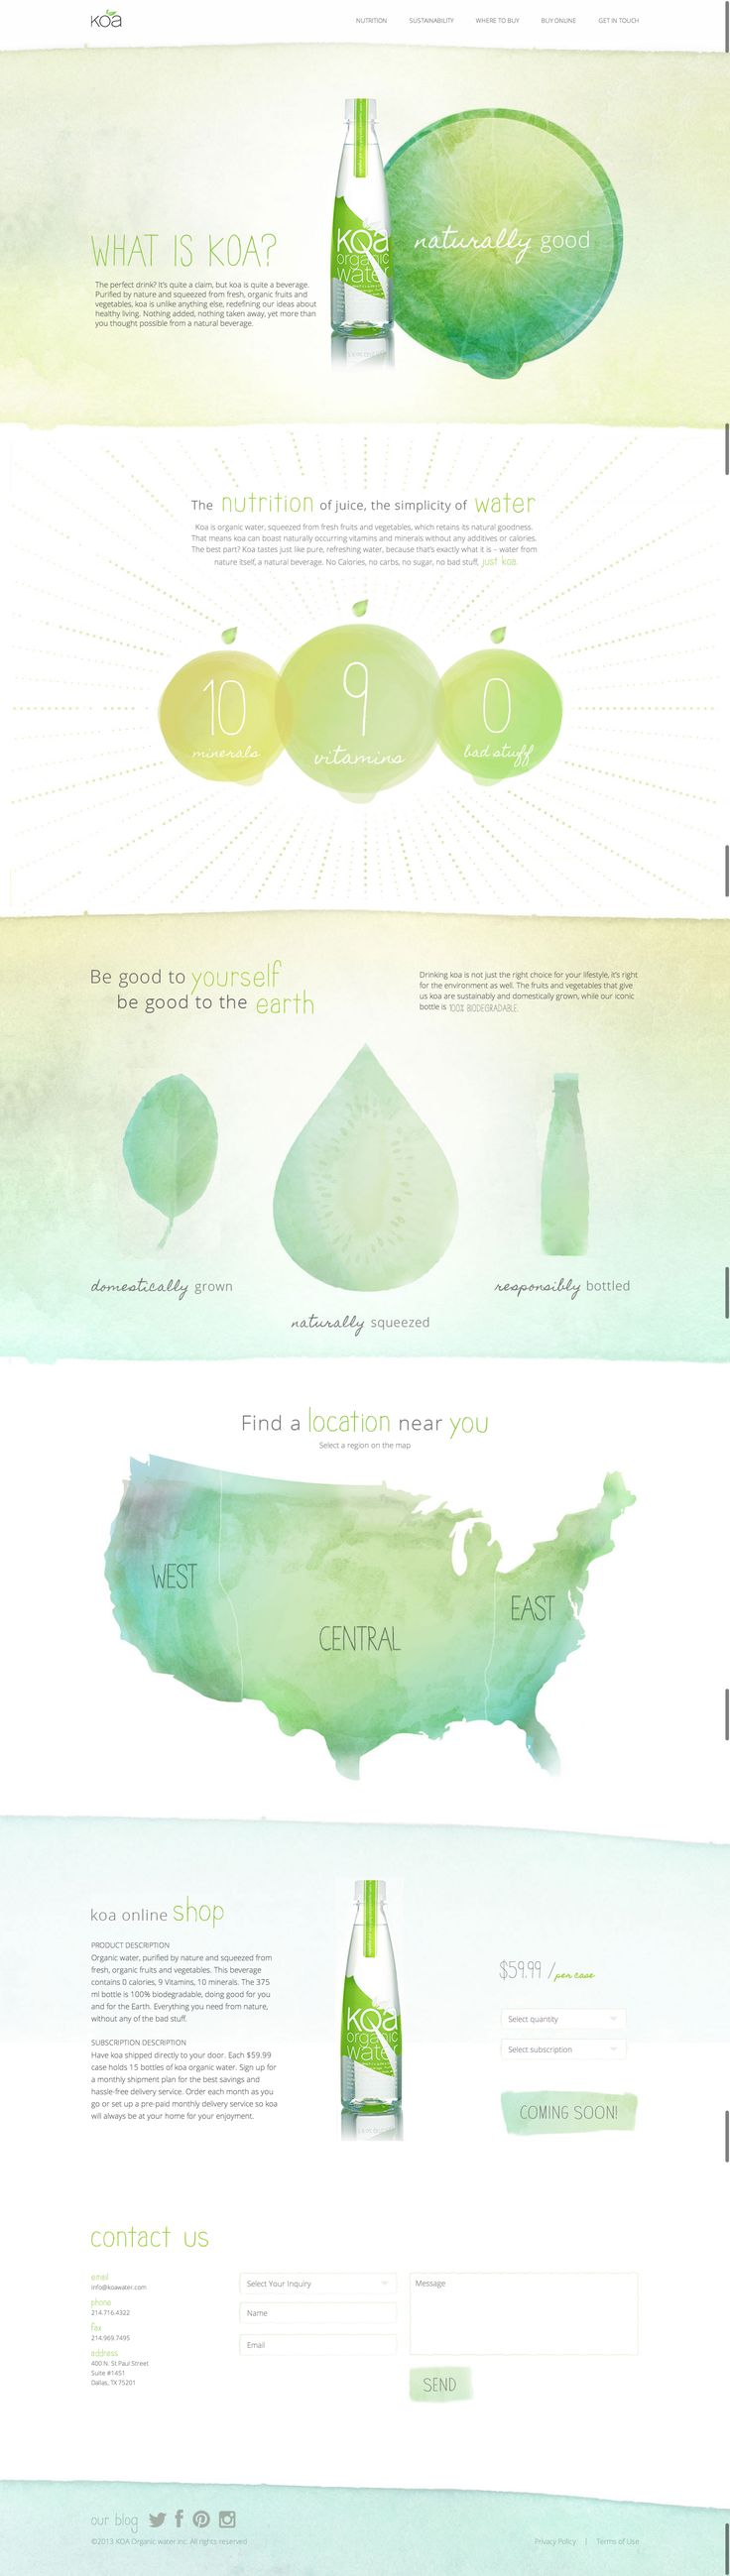 web design inspiration: water colors with lots of white space; very calming and refreshing